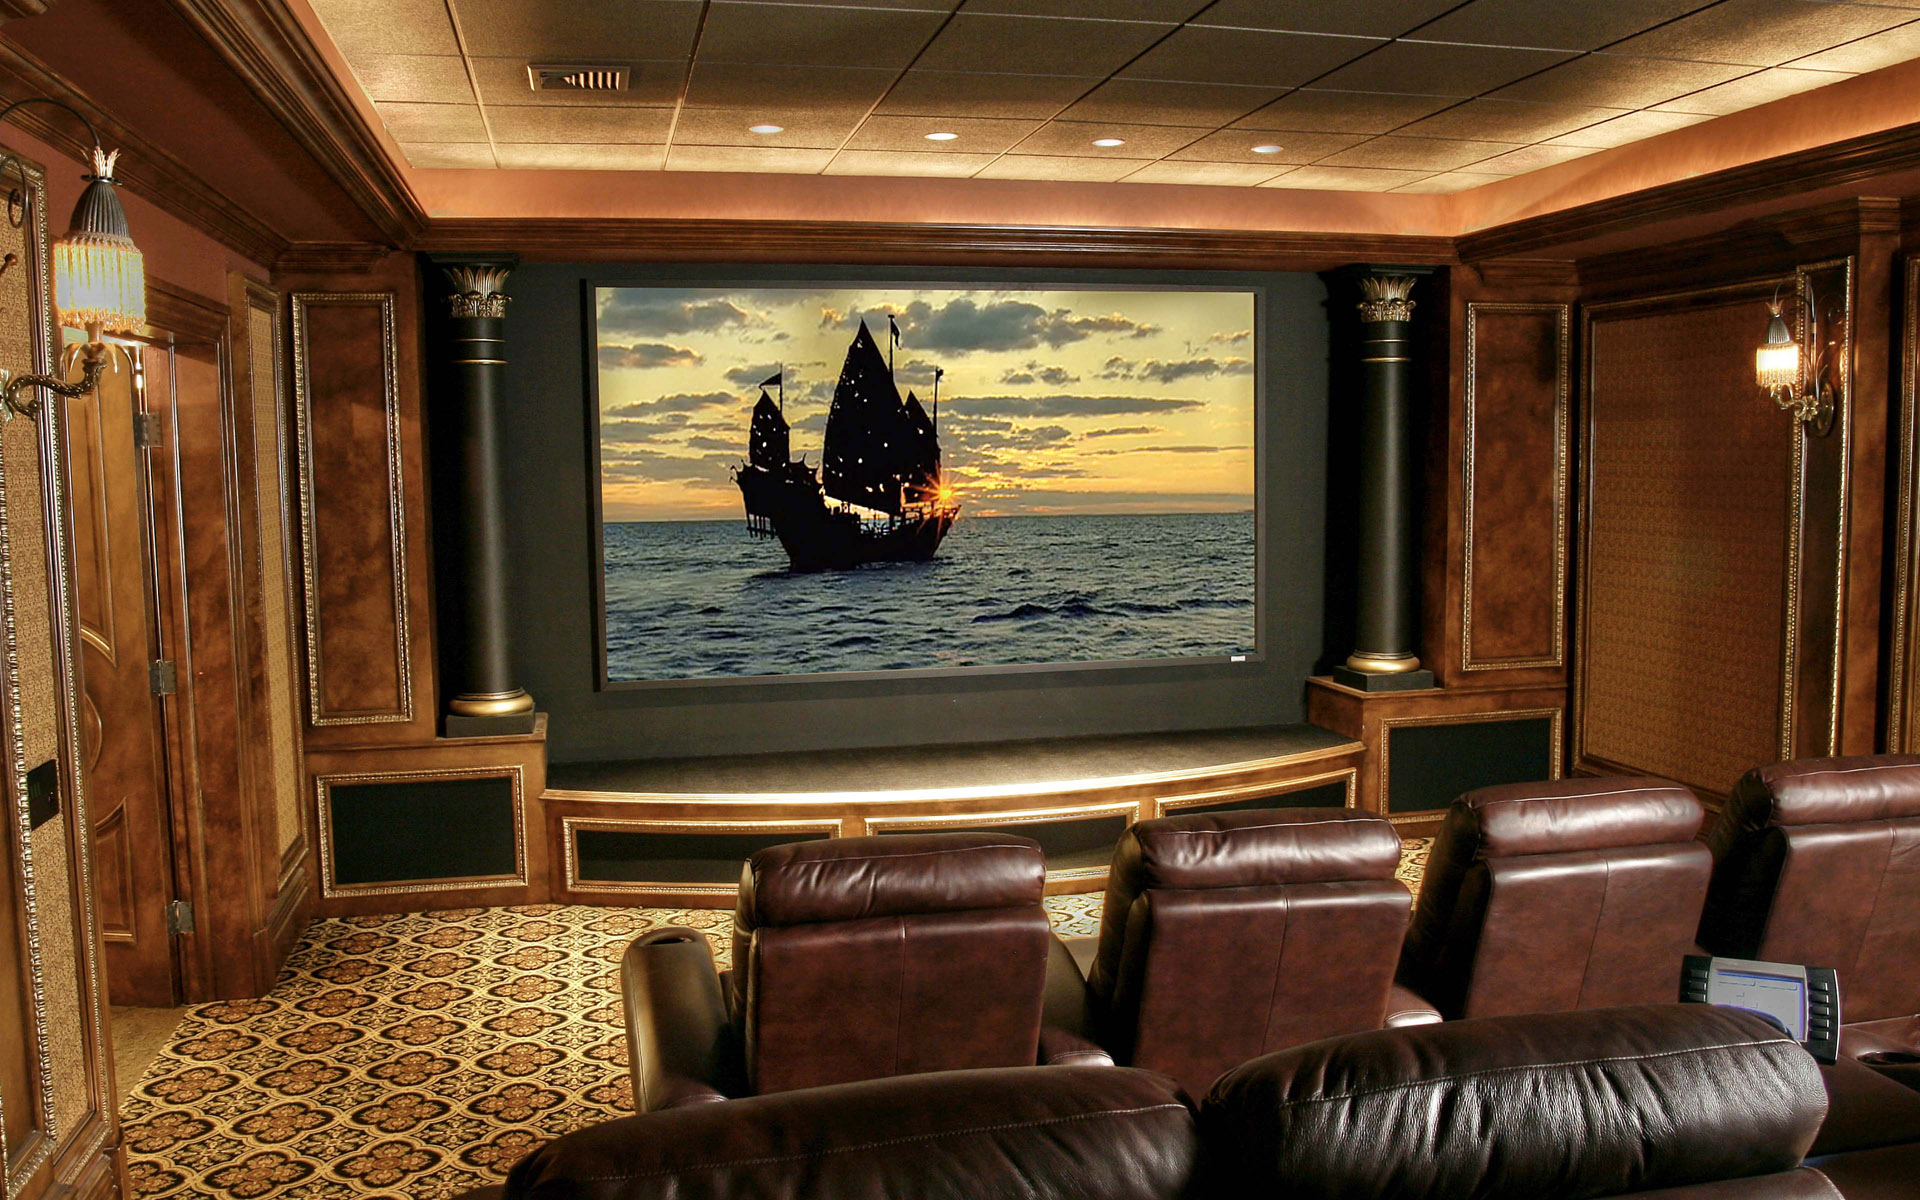 Easy Entertainment The No Fear Mini Guide To Home Theater